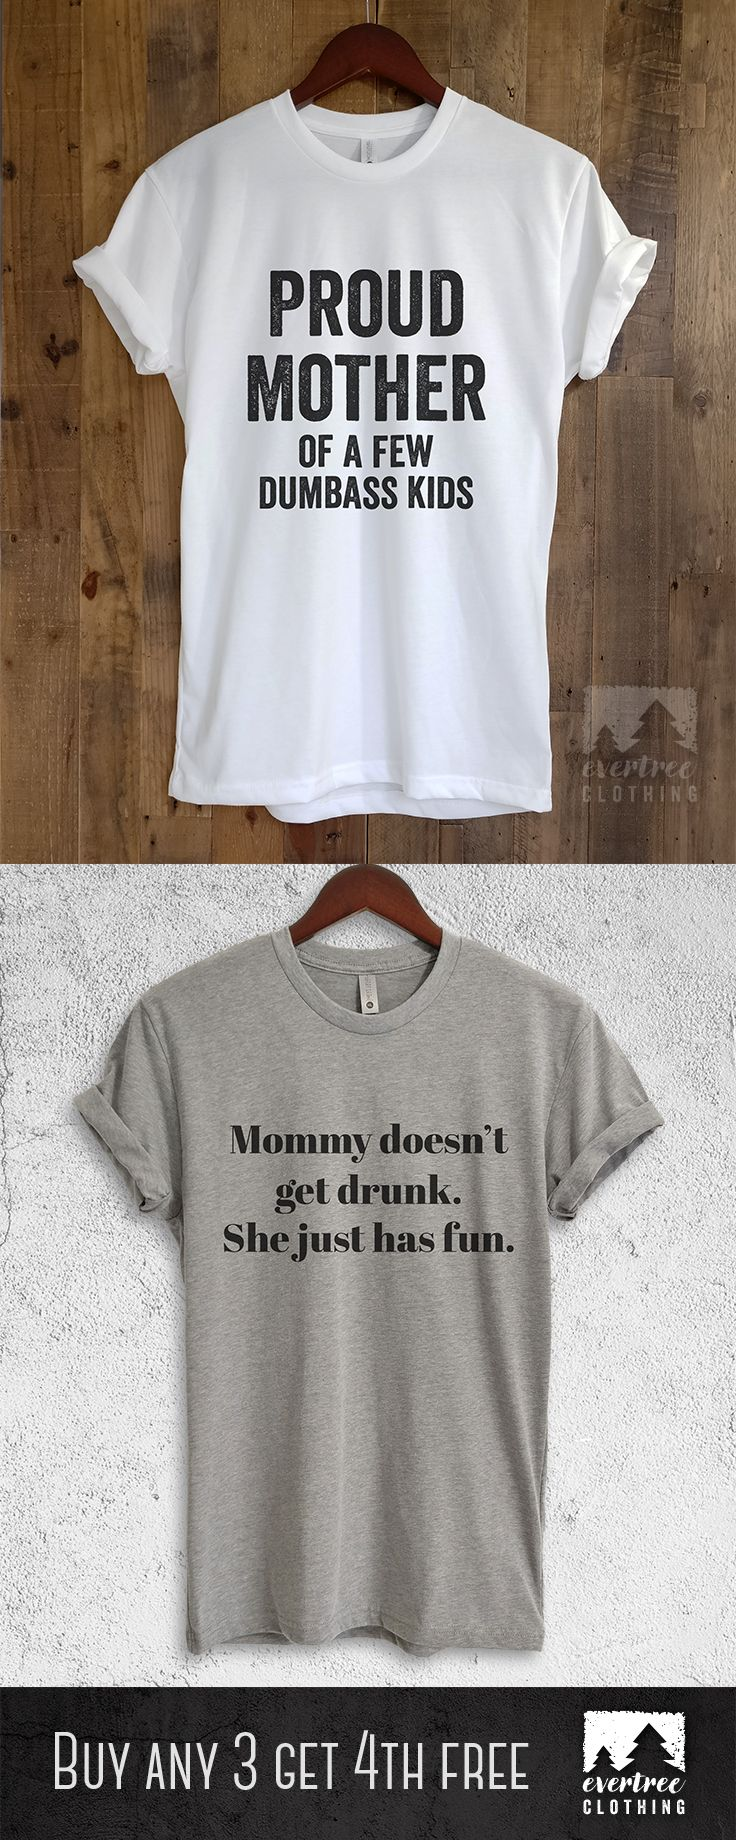 best funny shirts images on pinterest shirts t shirts and